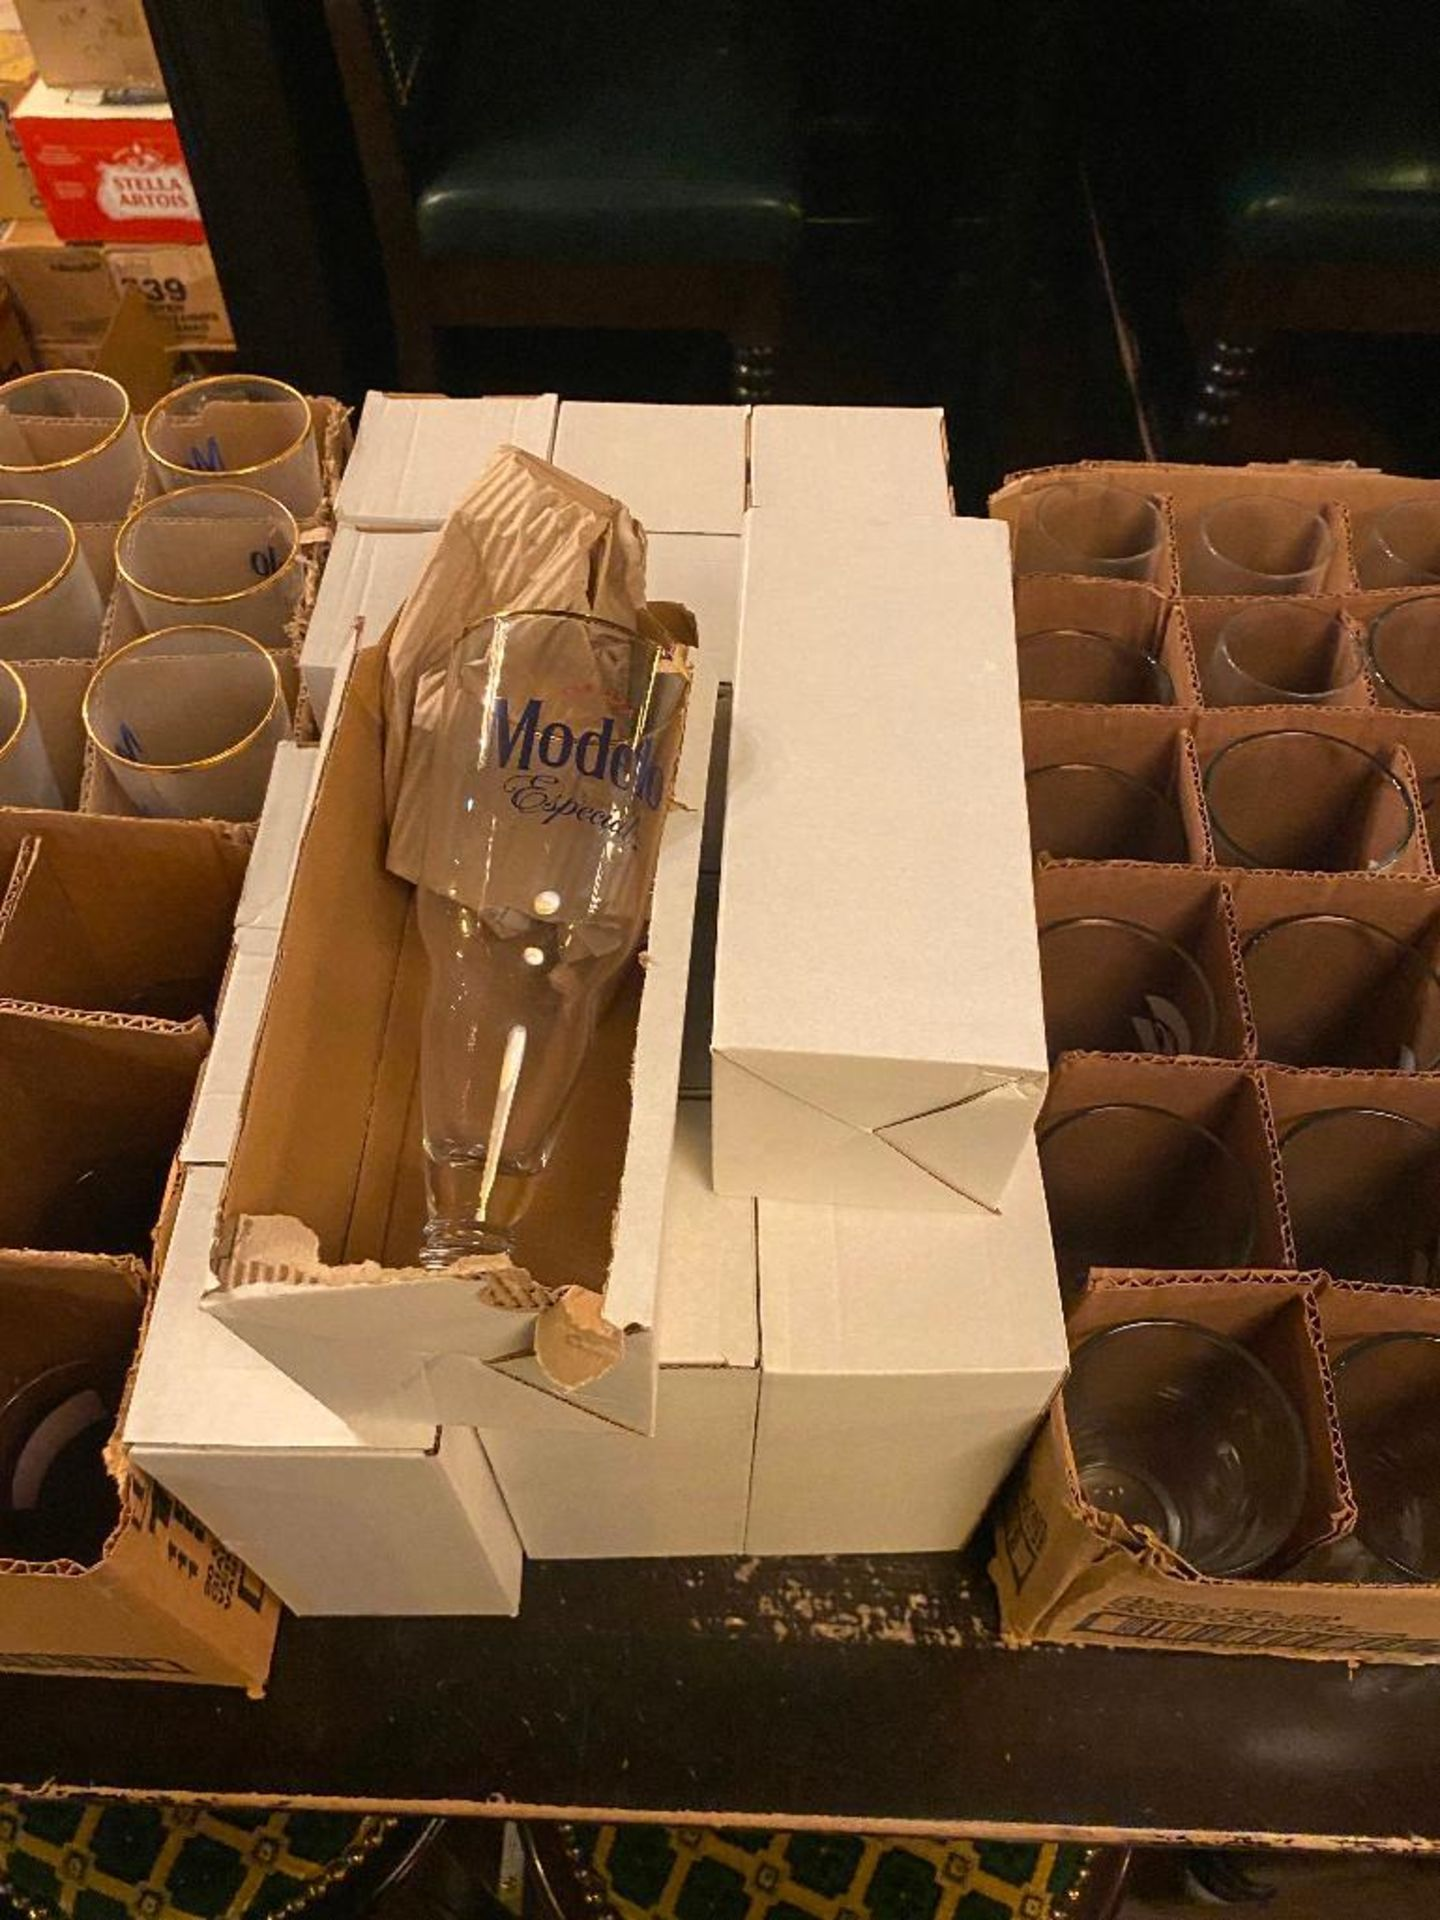 LOT OF ASSORTED BRANDED GLASSES INCLUDING MODELO - Image 3 of 4